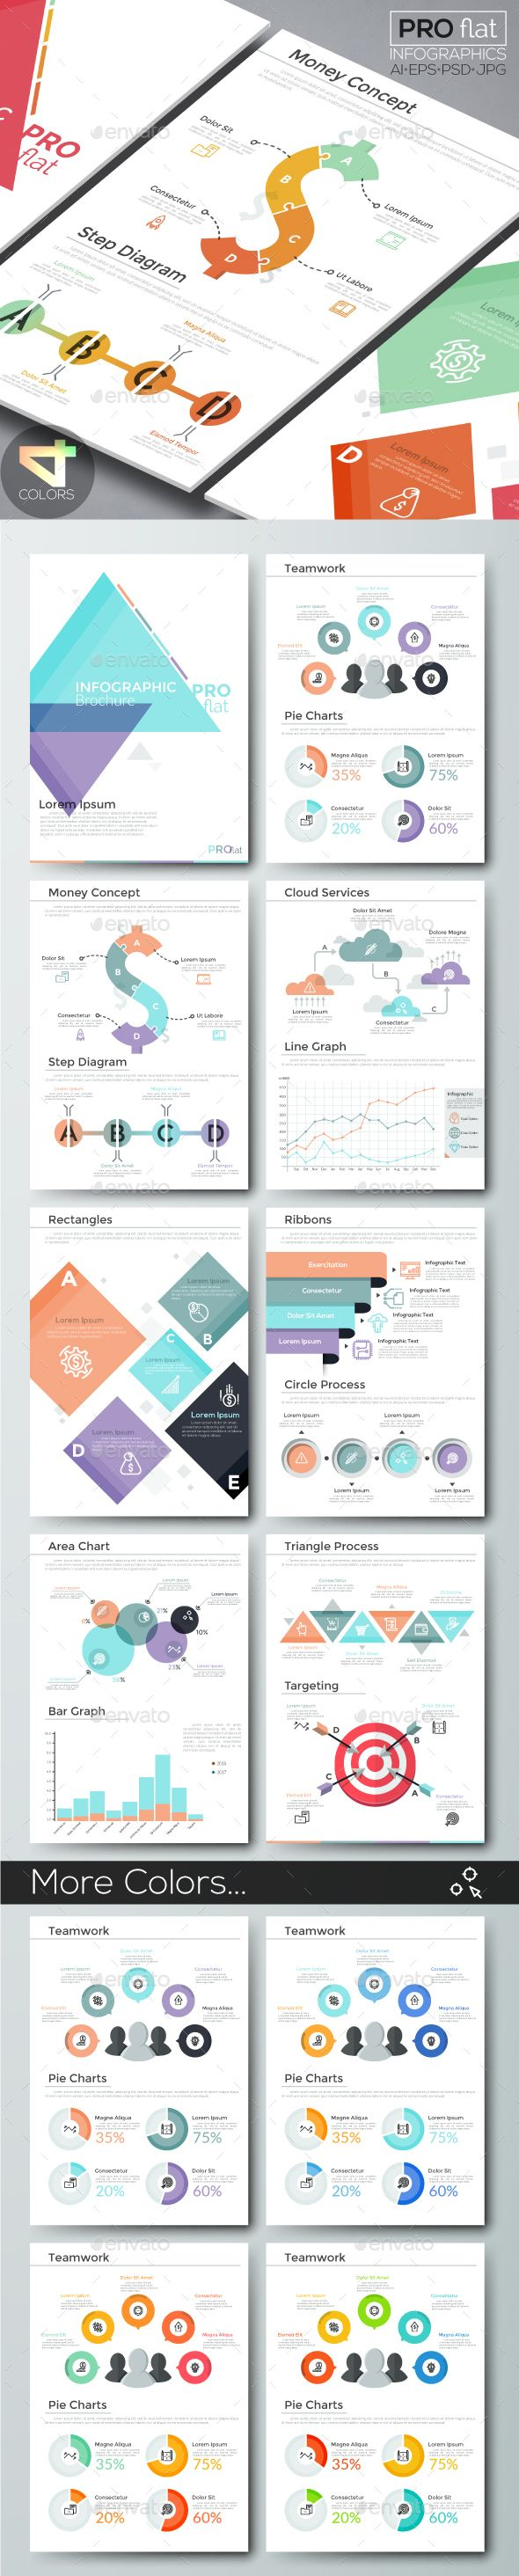 2273 best images about best infographic templates on pinterest infographic tools illustrator. Black Bedroom Furniture Sets. Home Design Ideas